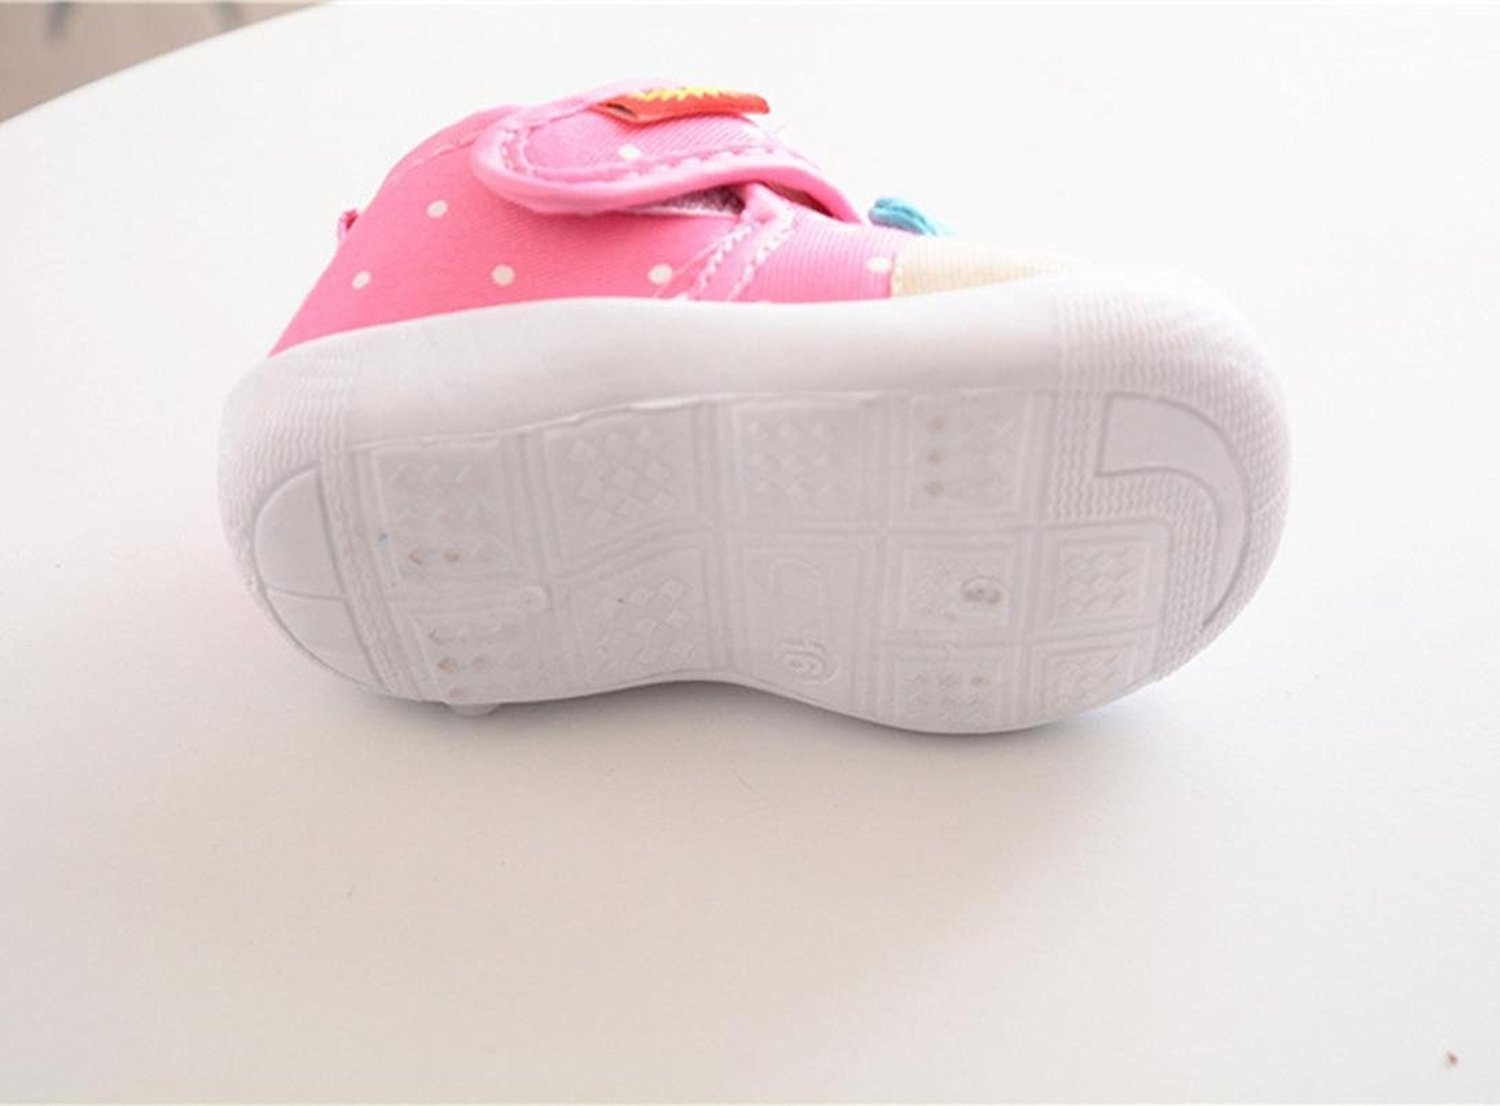 c9385832b576 Sole Bright Shoes Shoes  Buy Online from Fishpond.com.hk